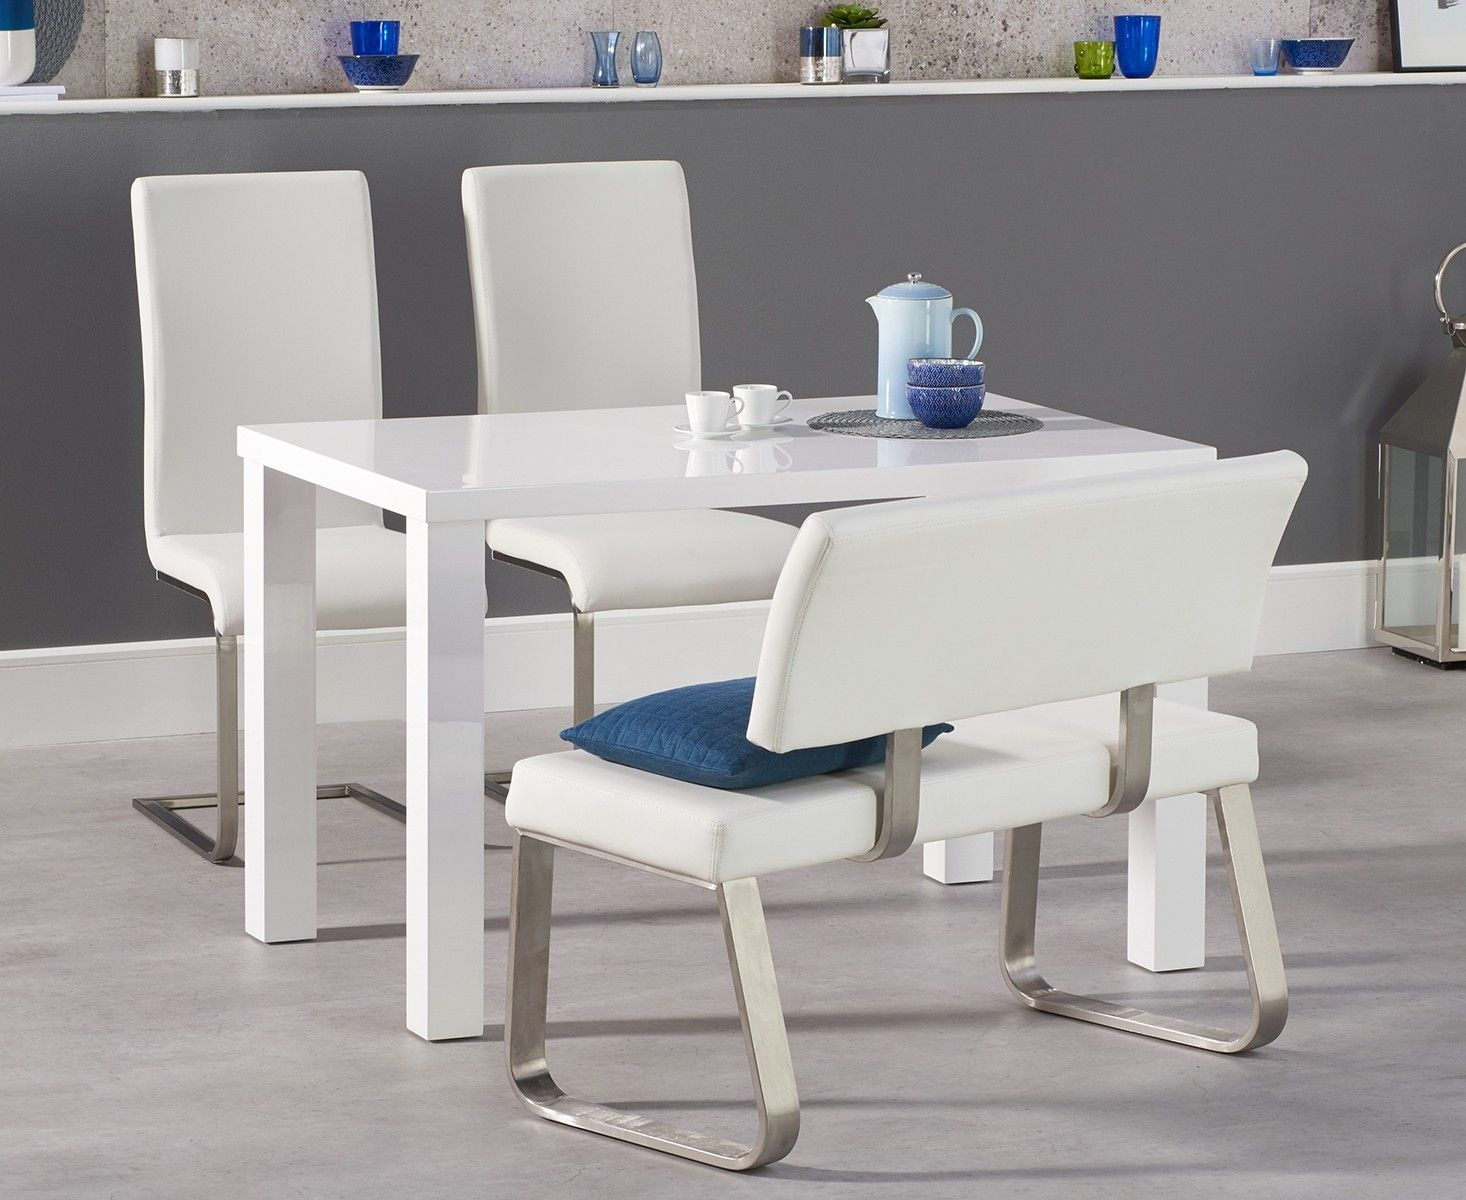 40+ White gloss dining table and bench Inspiration